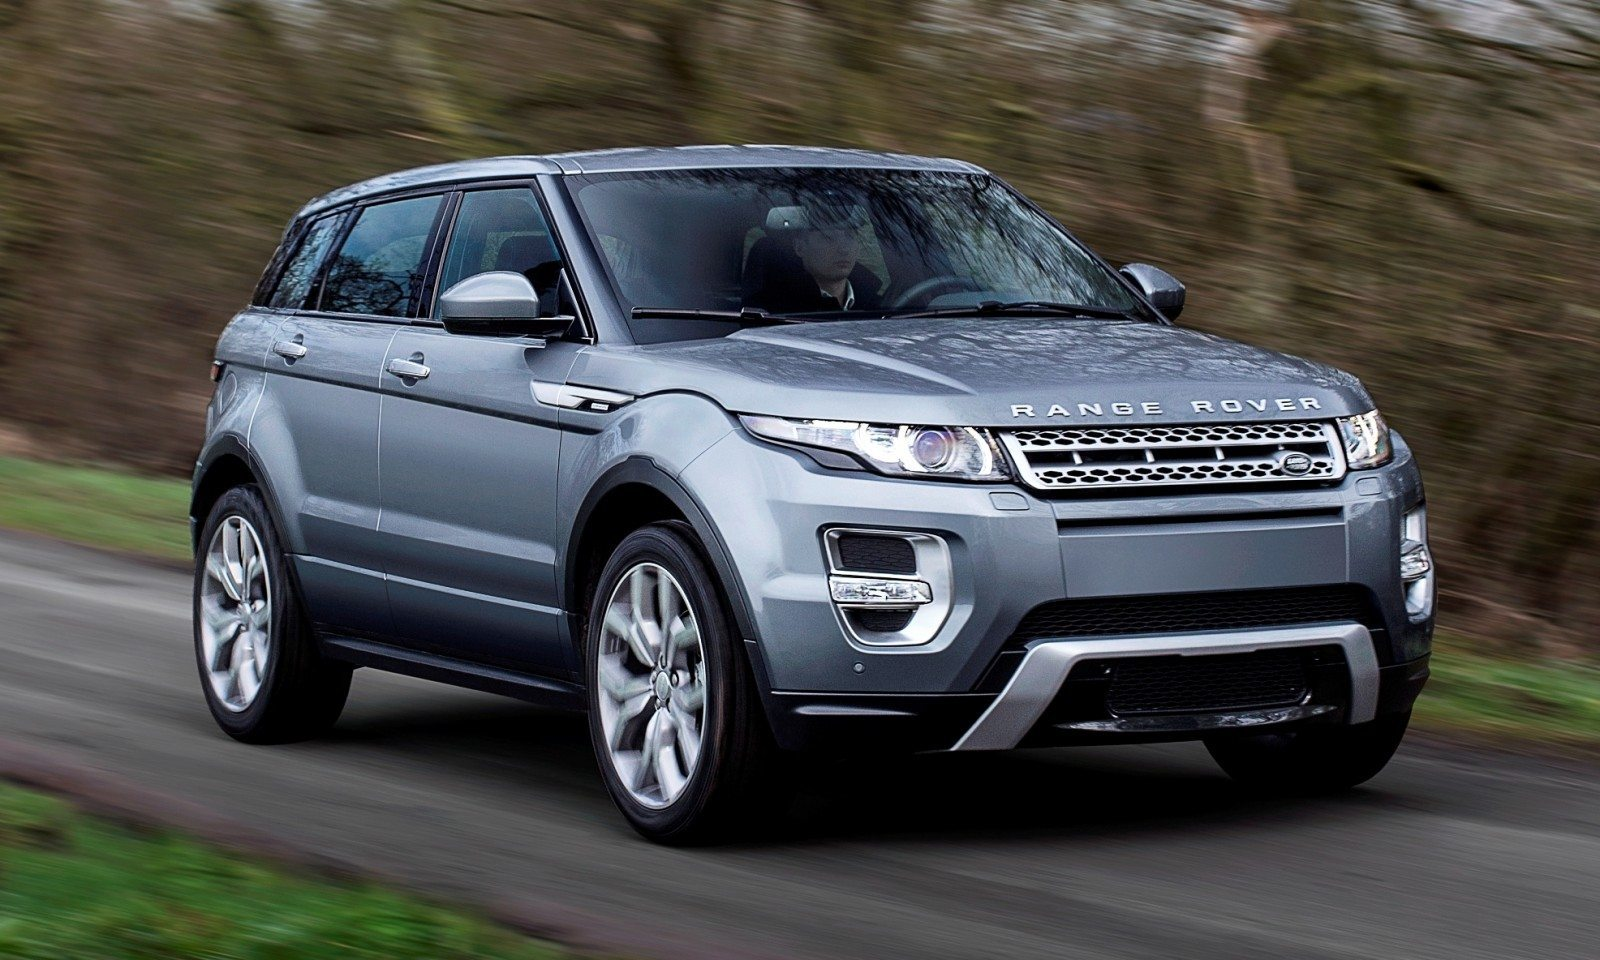 2015 Range Rover Evoque Gains 9-Speed Auto, Refreshed Info Tech and Boosted Engine HP 5